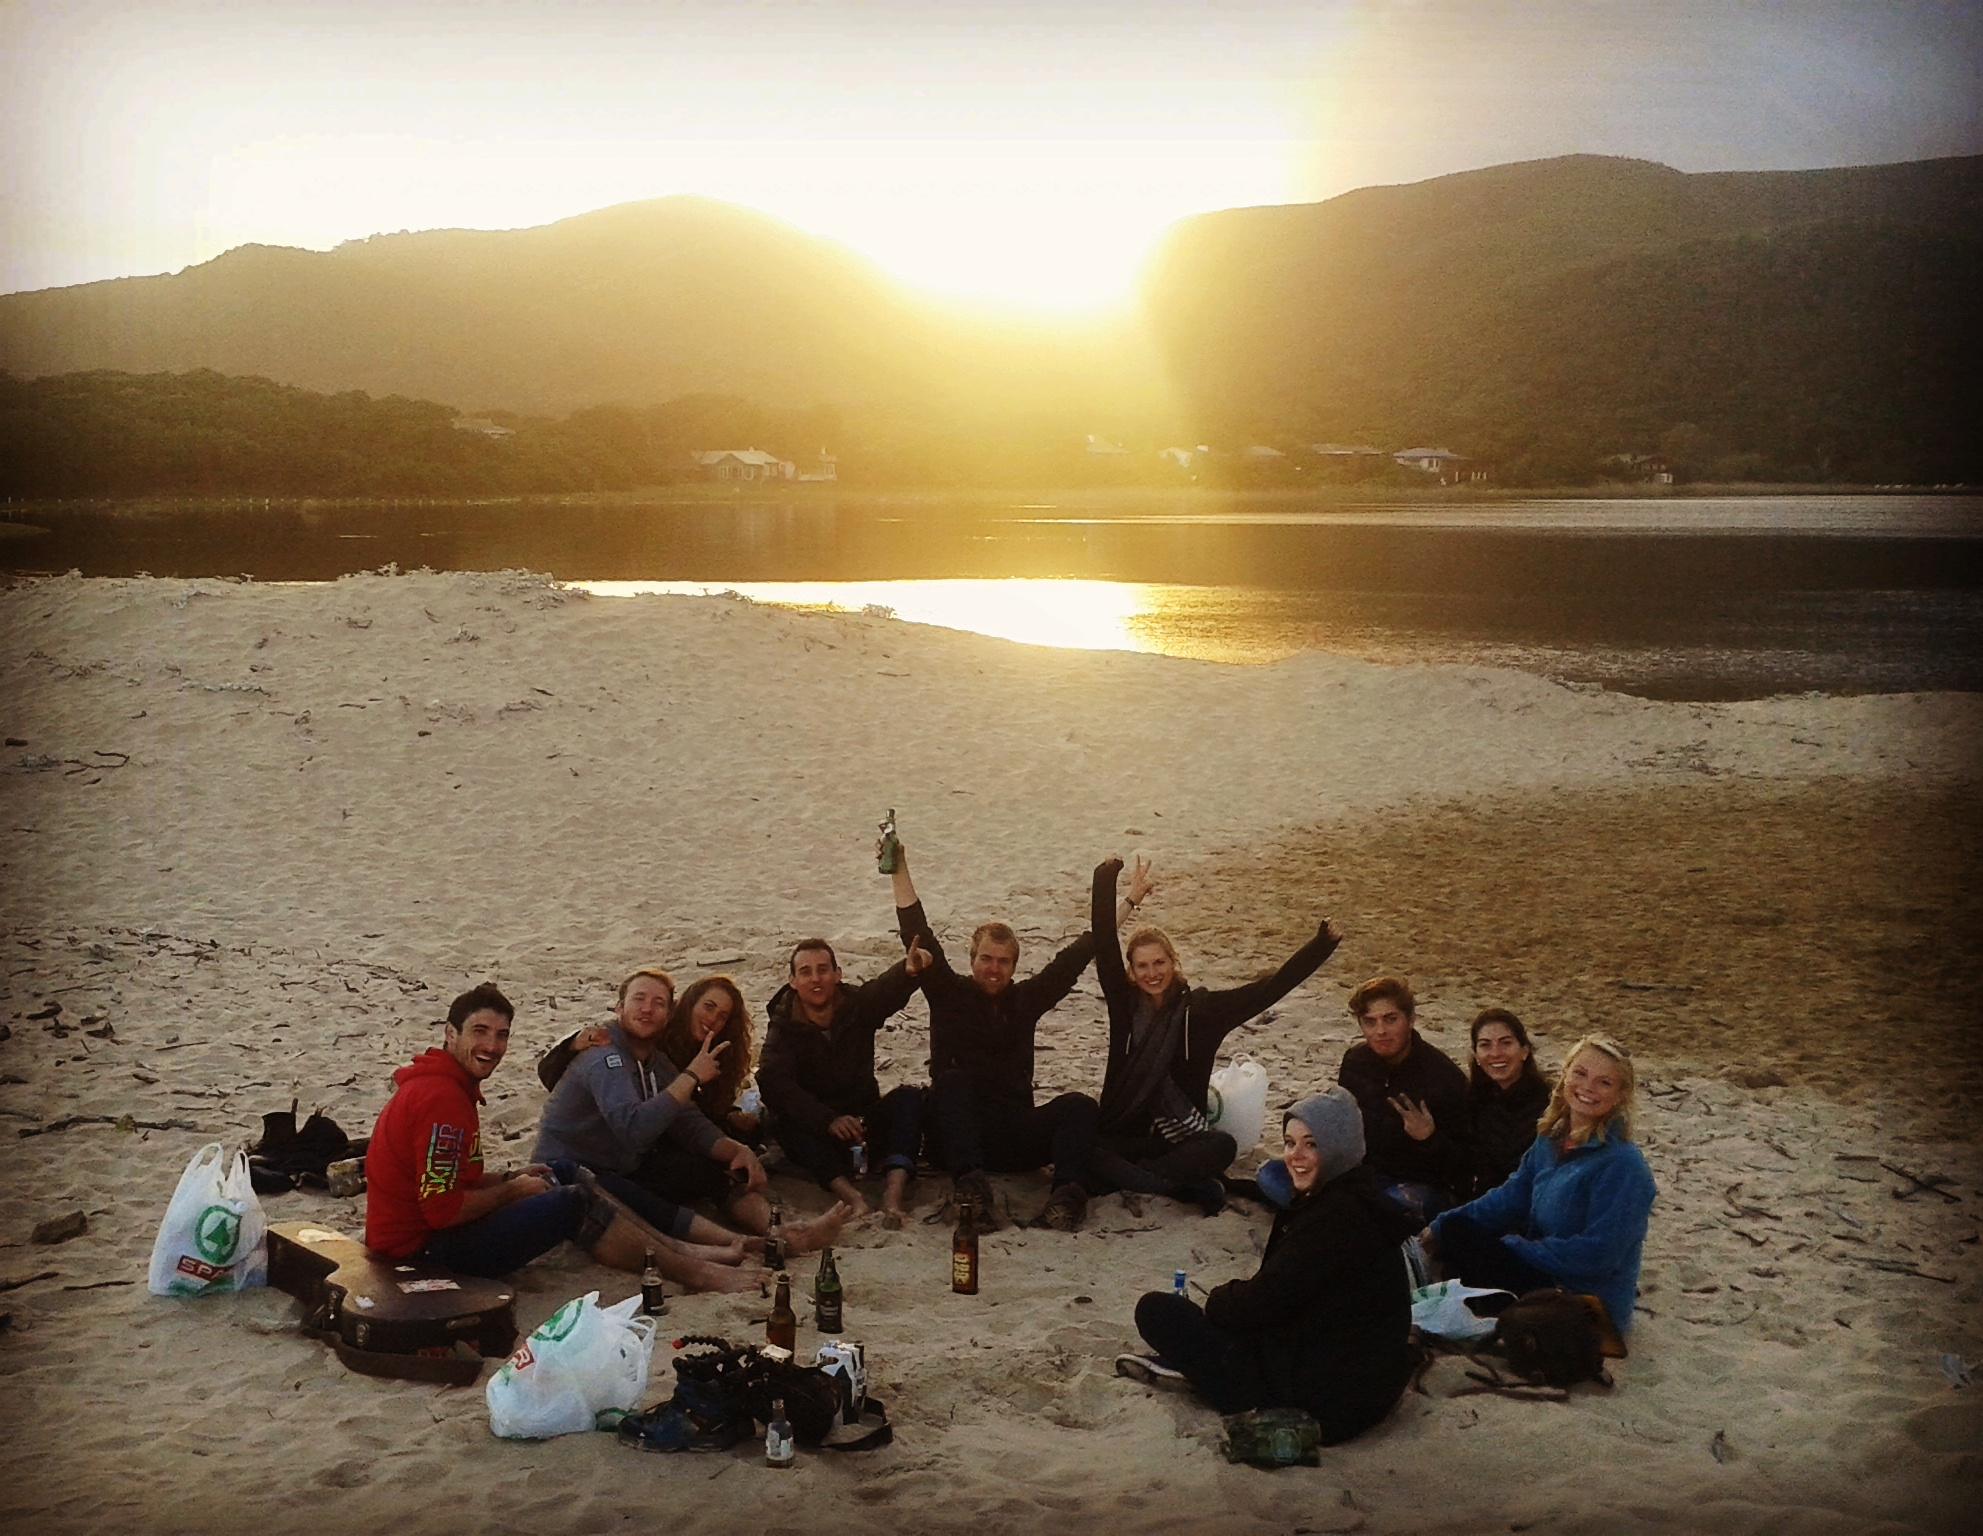 sunset_beach_sherry_sedgewicks_natures_valley_wild_spirit_live_music_students